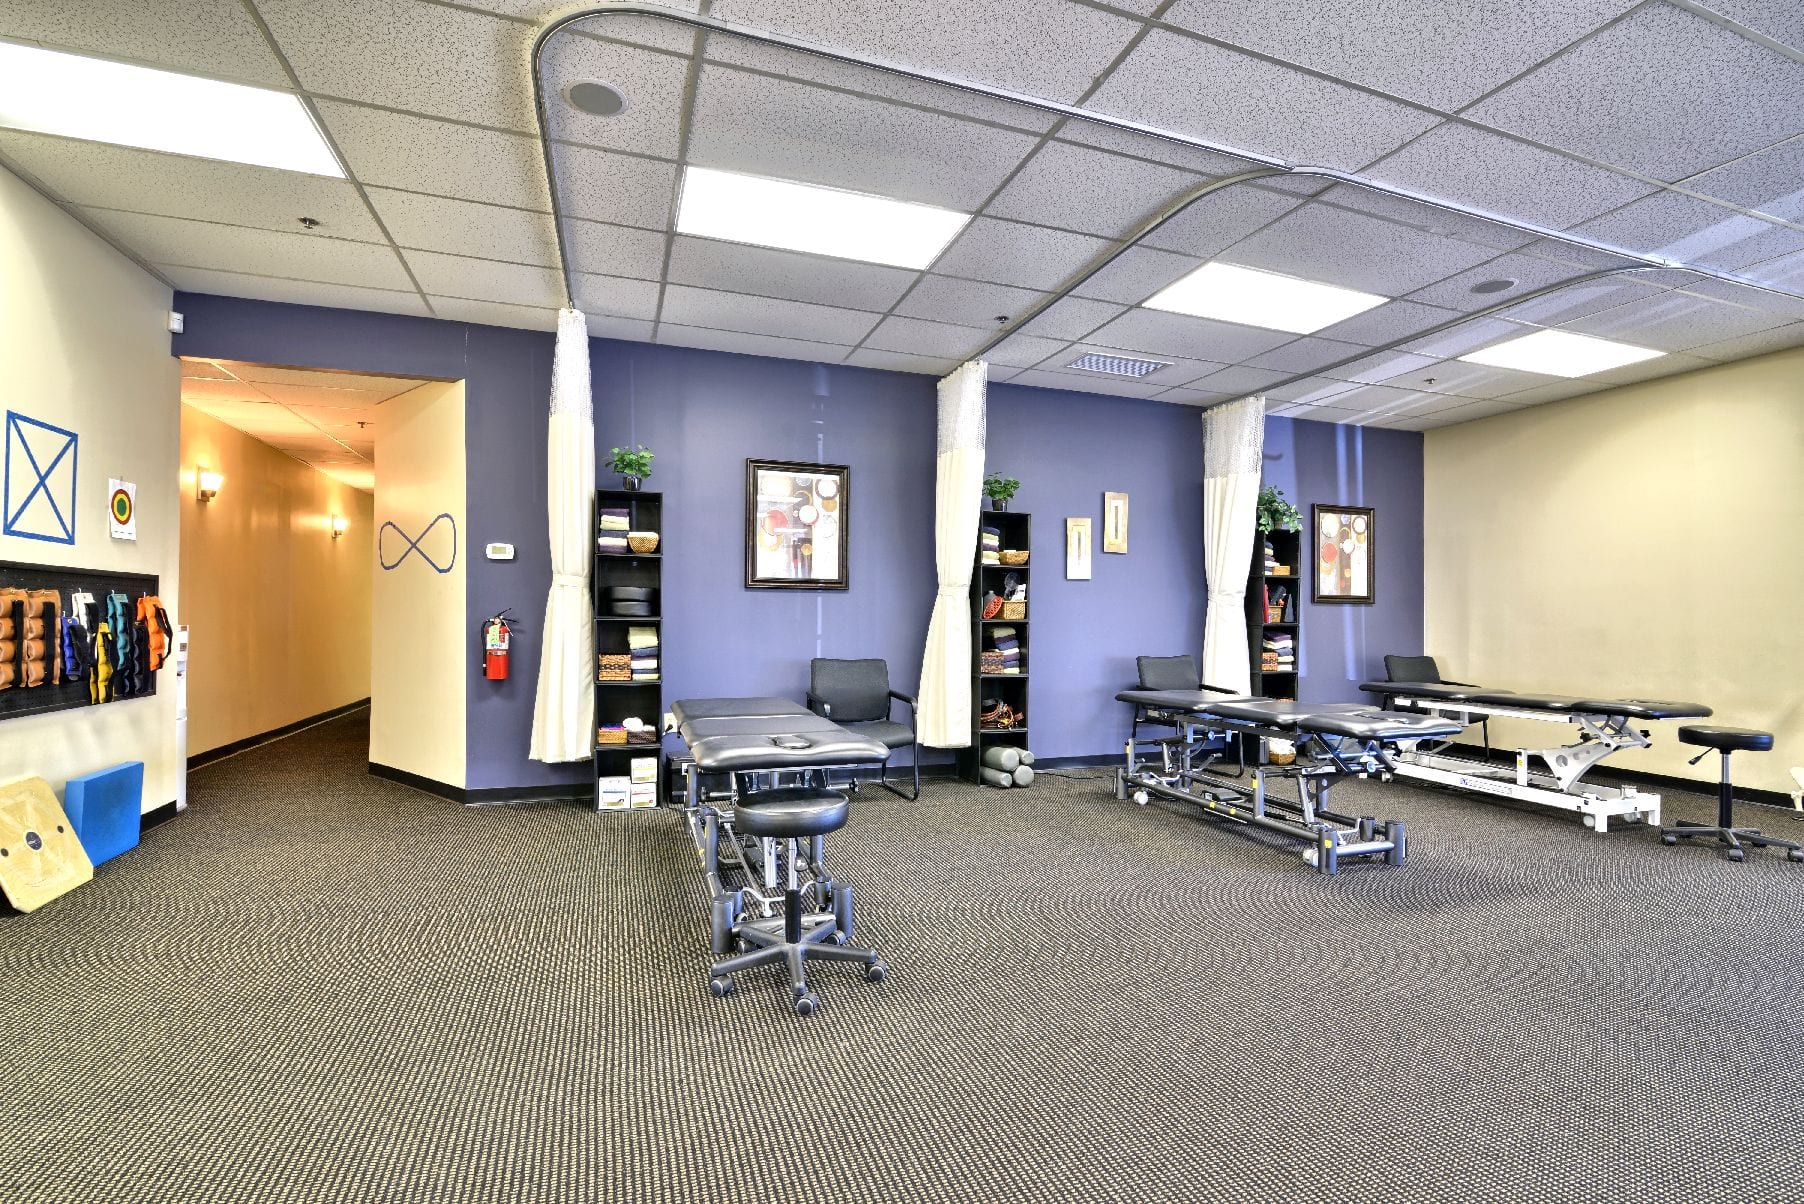 Here is an image of the interior of our clean facility. The image showcases our stretch beds at our physical therapy clinic in Middleton, Massachusetts.